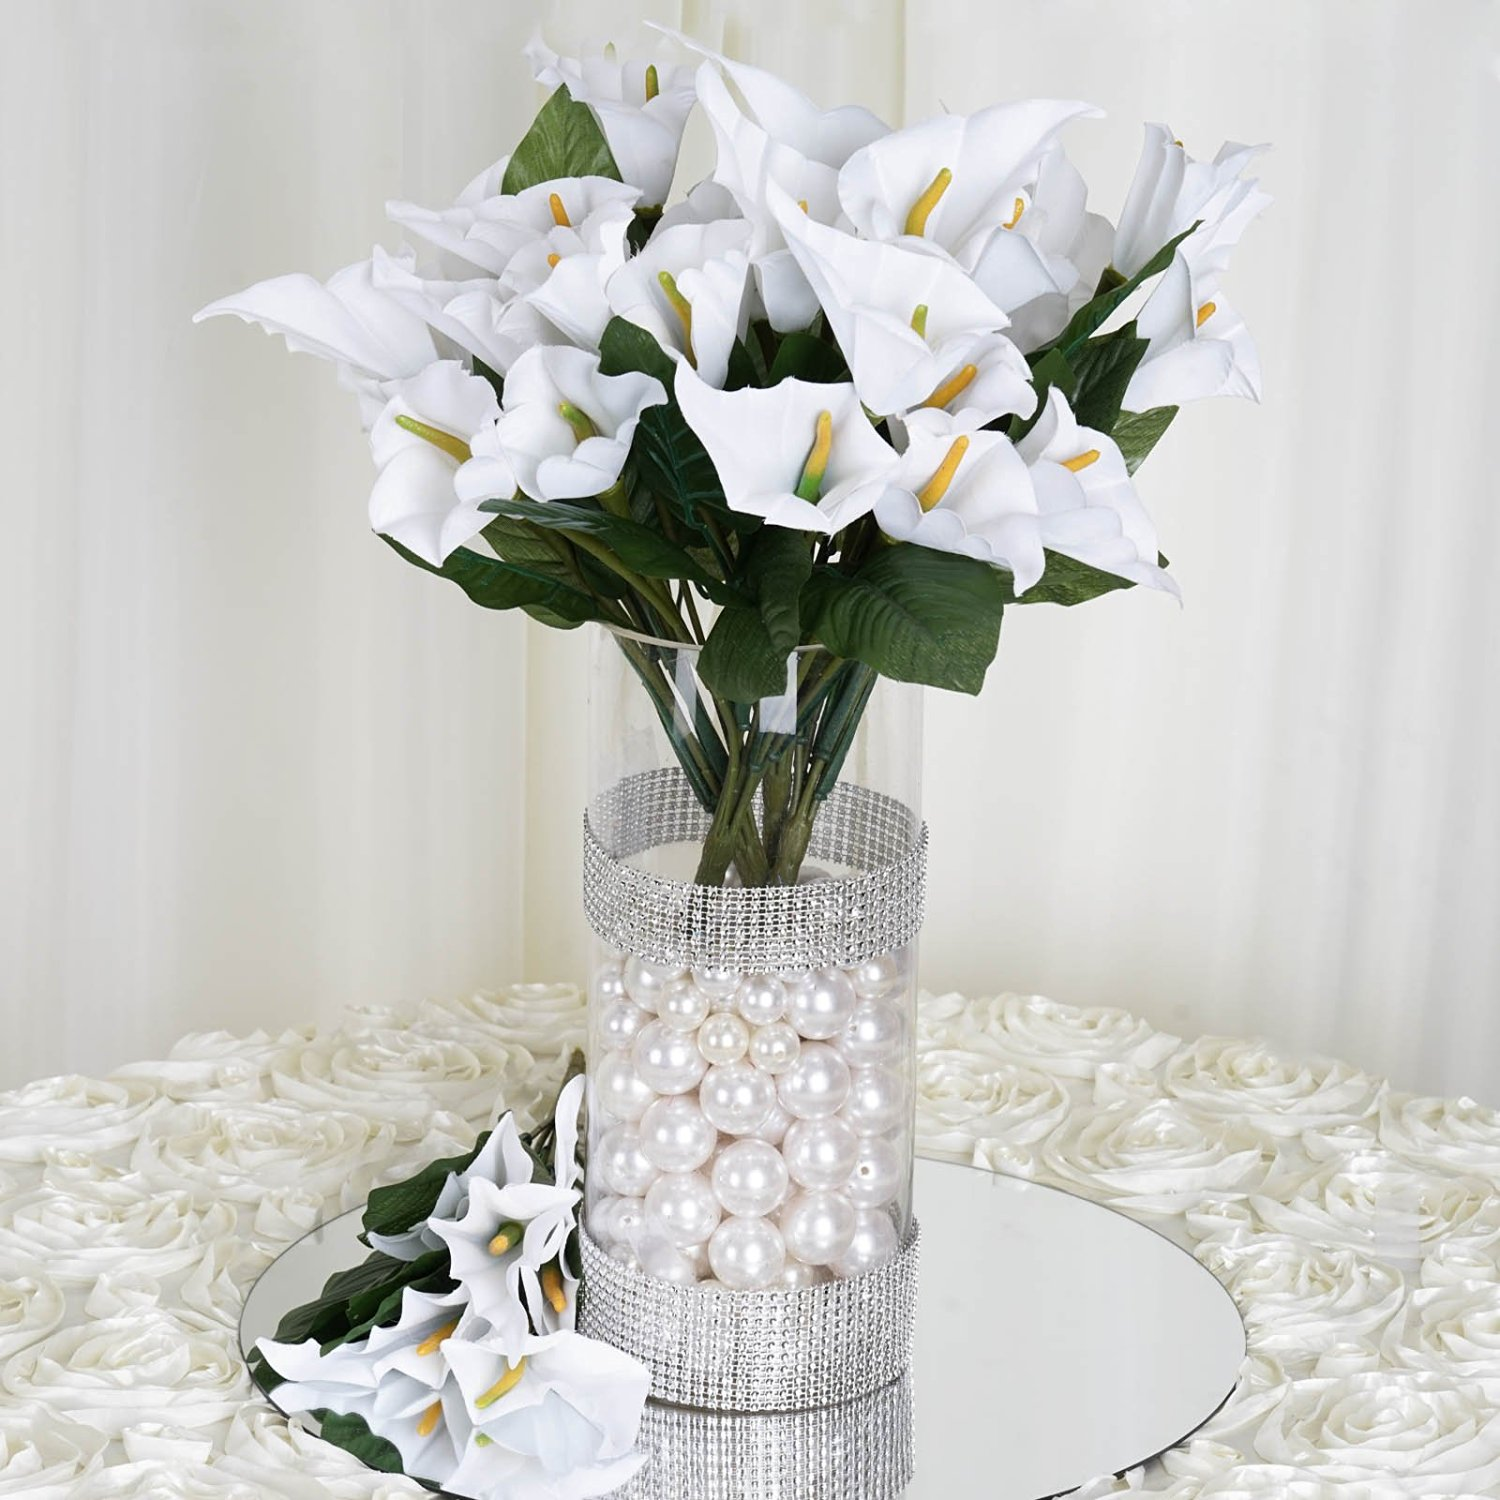 Cheap Calla Lily Silk Flowers Find Calla Lily Silk Flowers Deals On